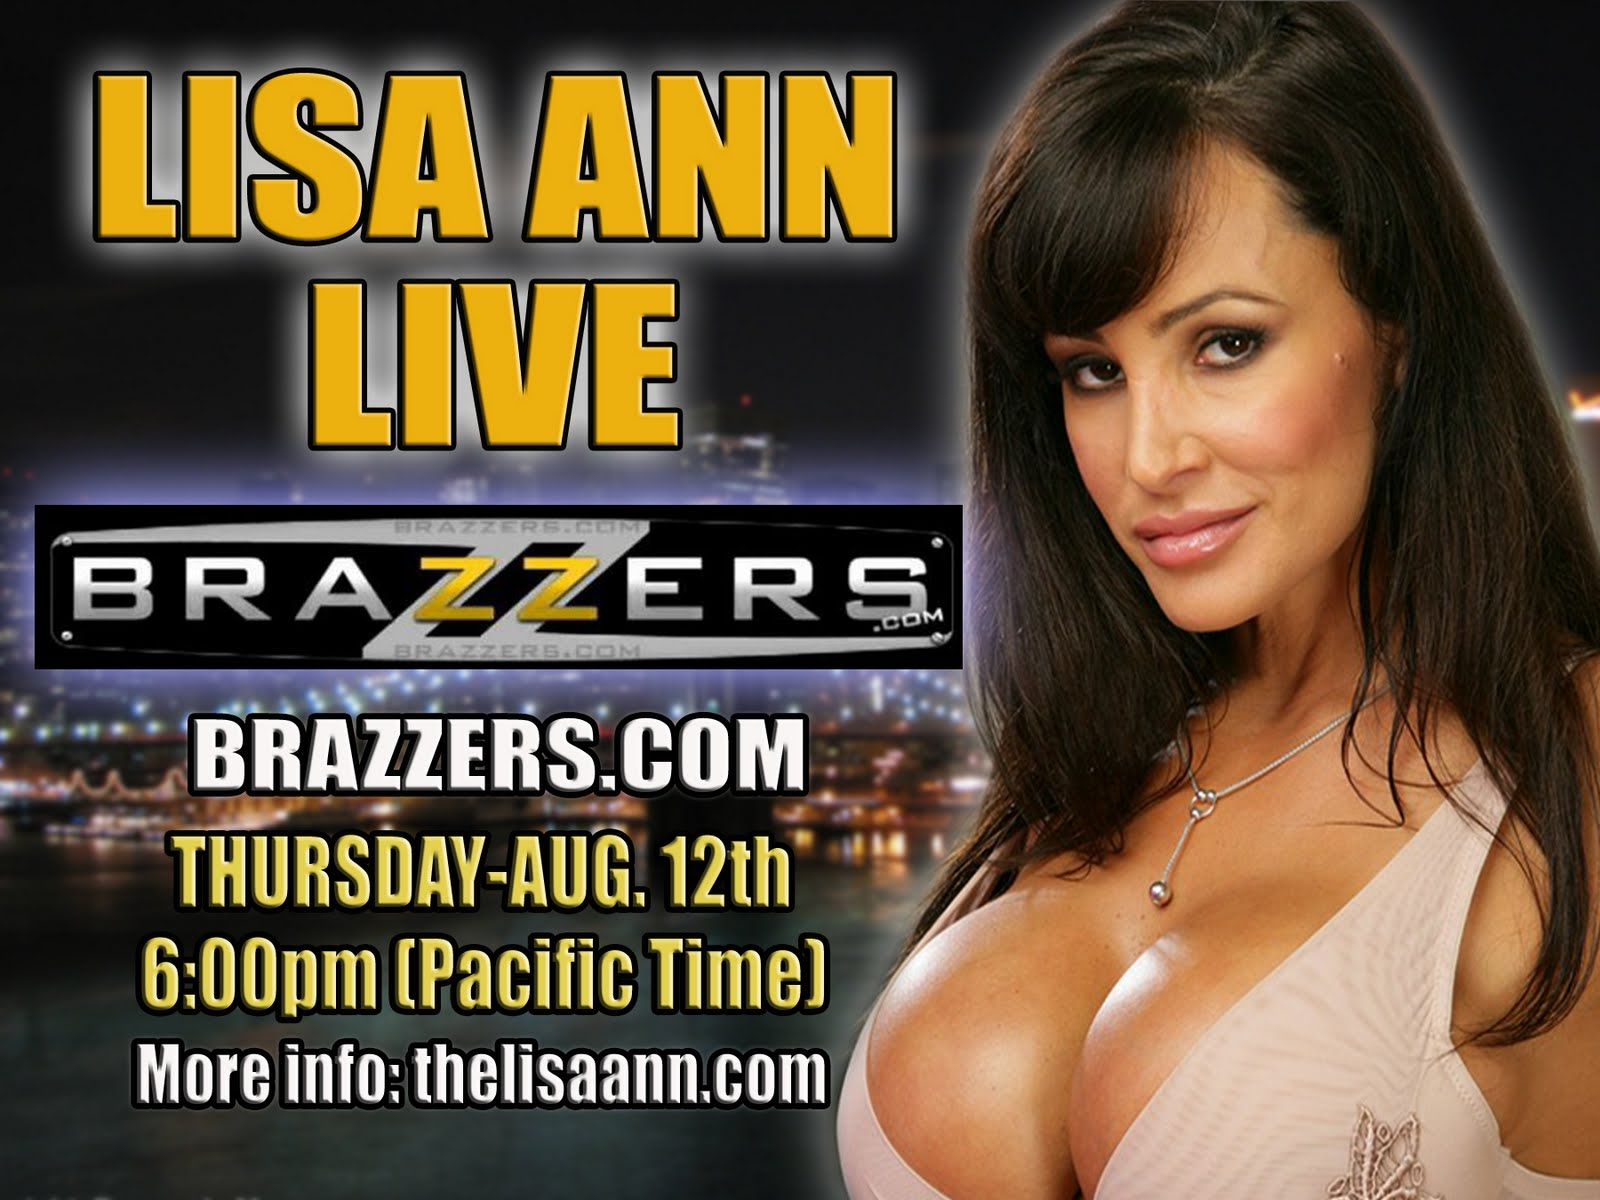 brazzers official website